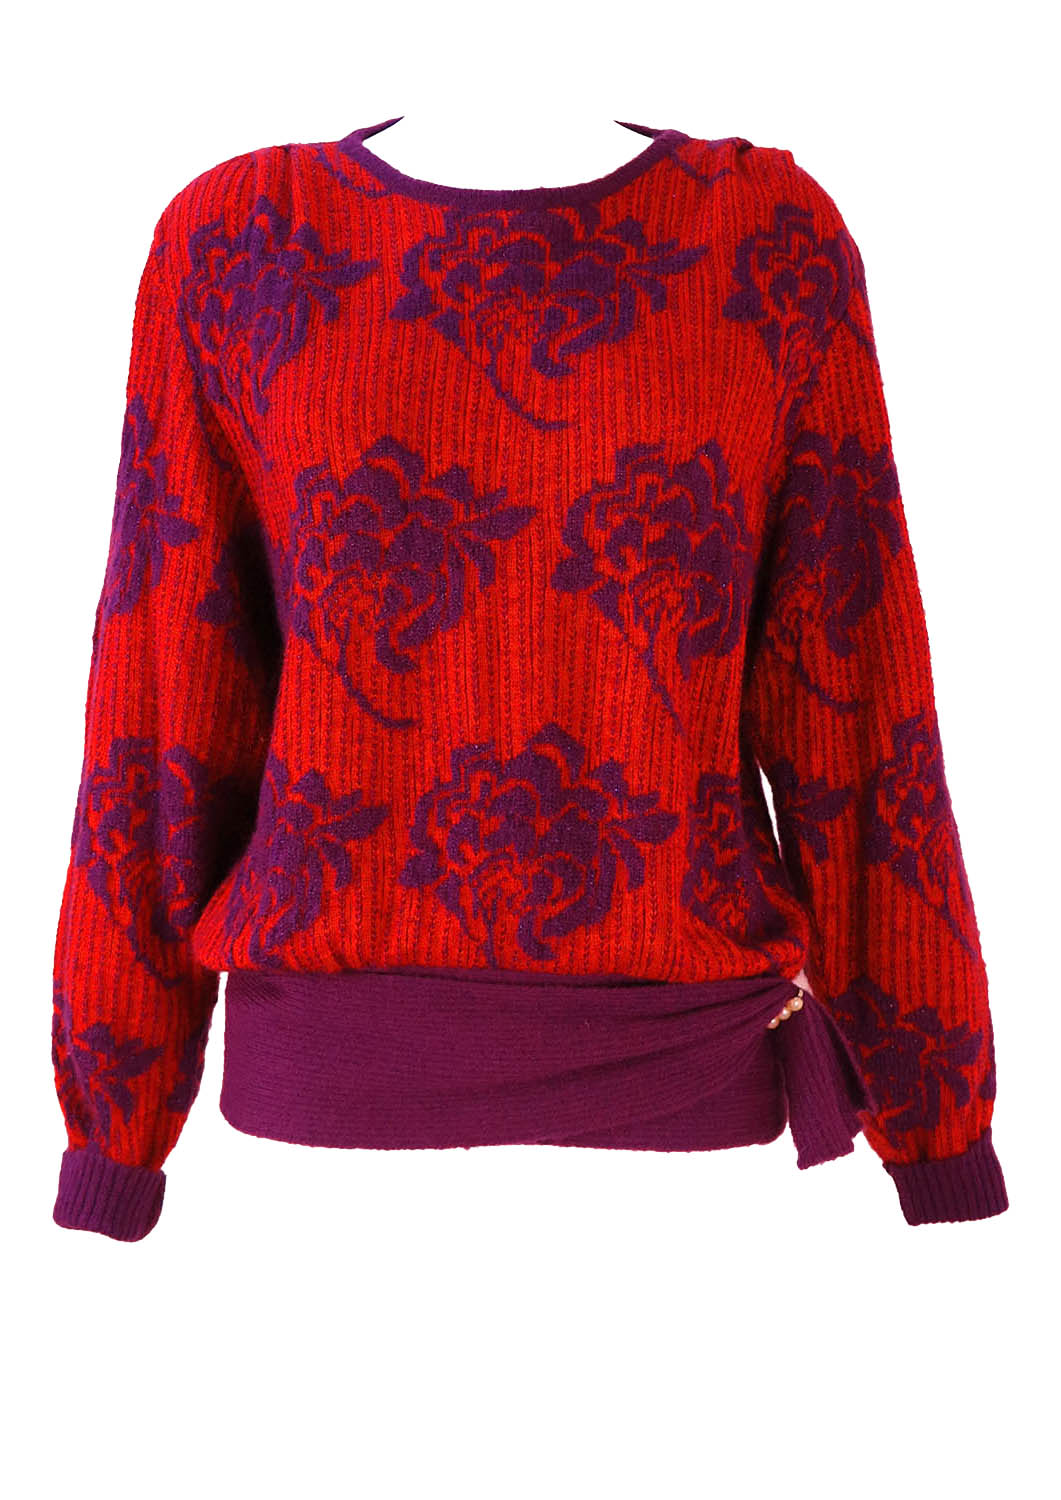 1c95d5affc011 Vintage 1980 s Red and Purple Floral Pattern Jumper – M L